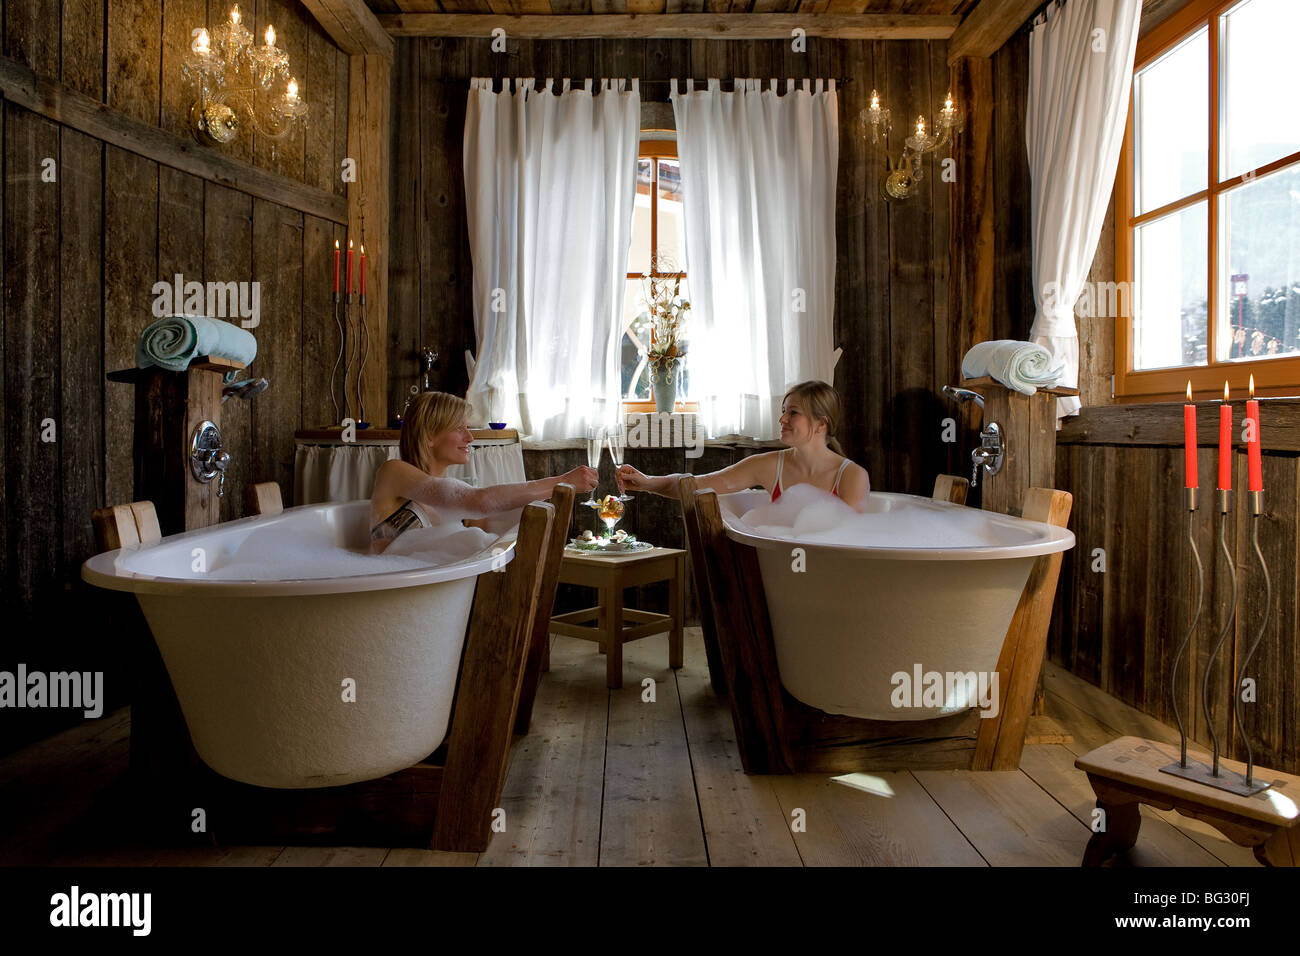 Europe, Italy, Alto Adige, Dolomiti, spa, treatments, bath, relax, wellness, girls - Stock Image